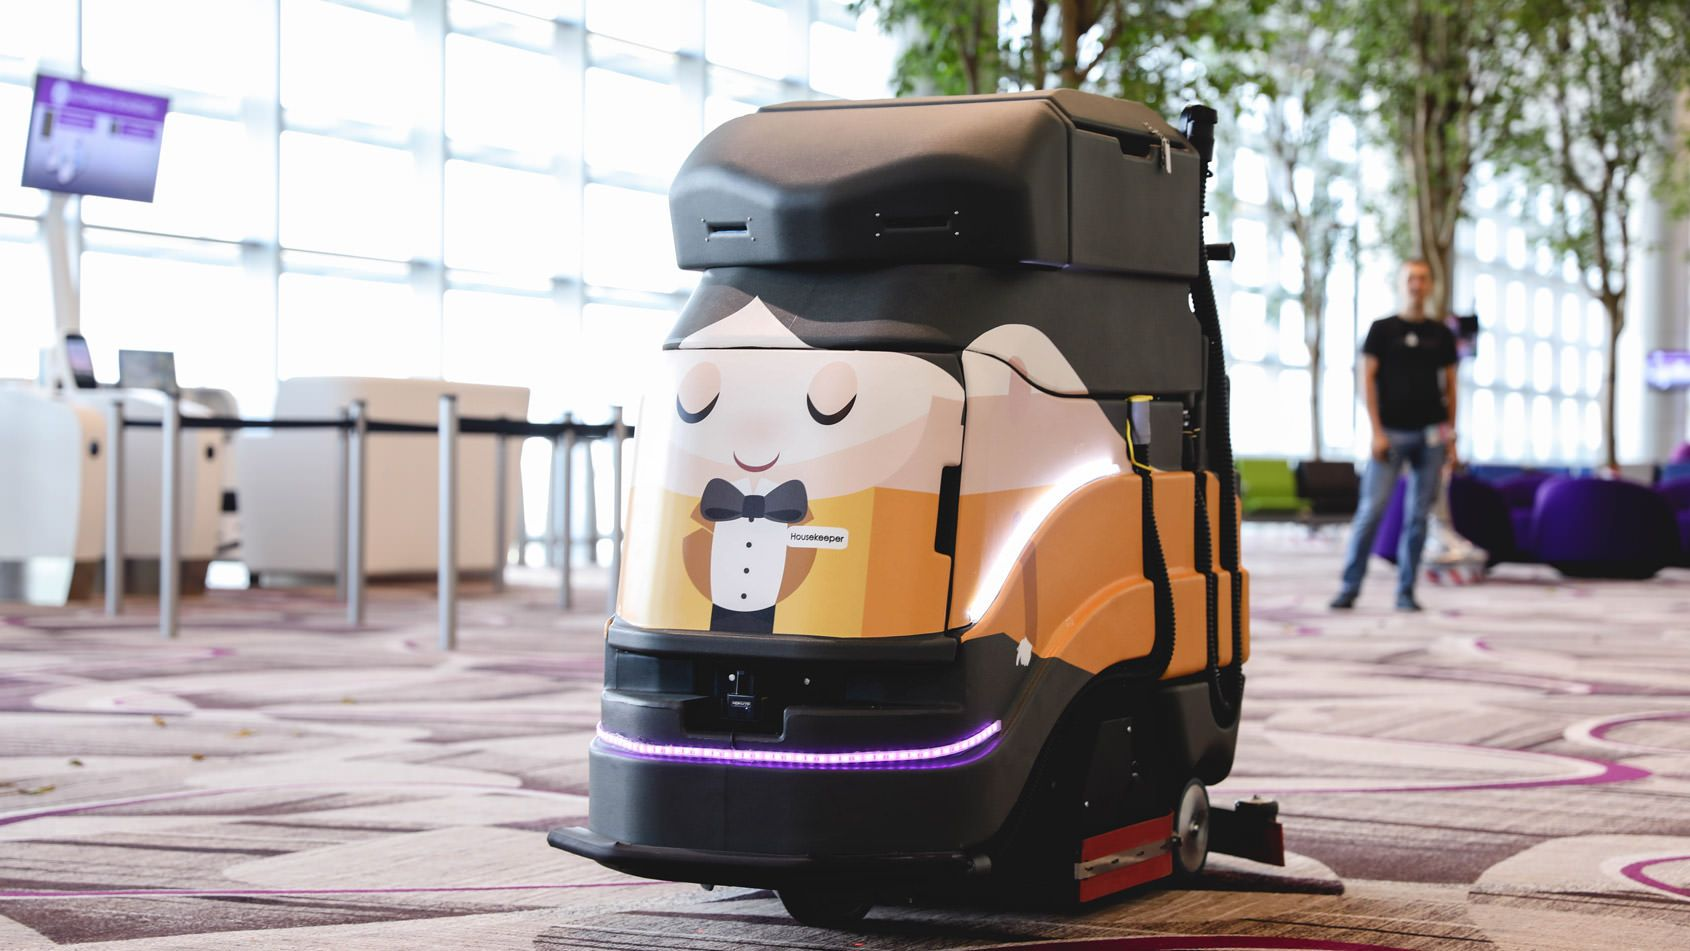 An autonomous floor-cleaning robot by Avidbots at Changi Airport in Singapore.